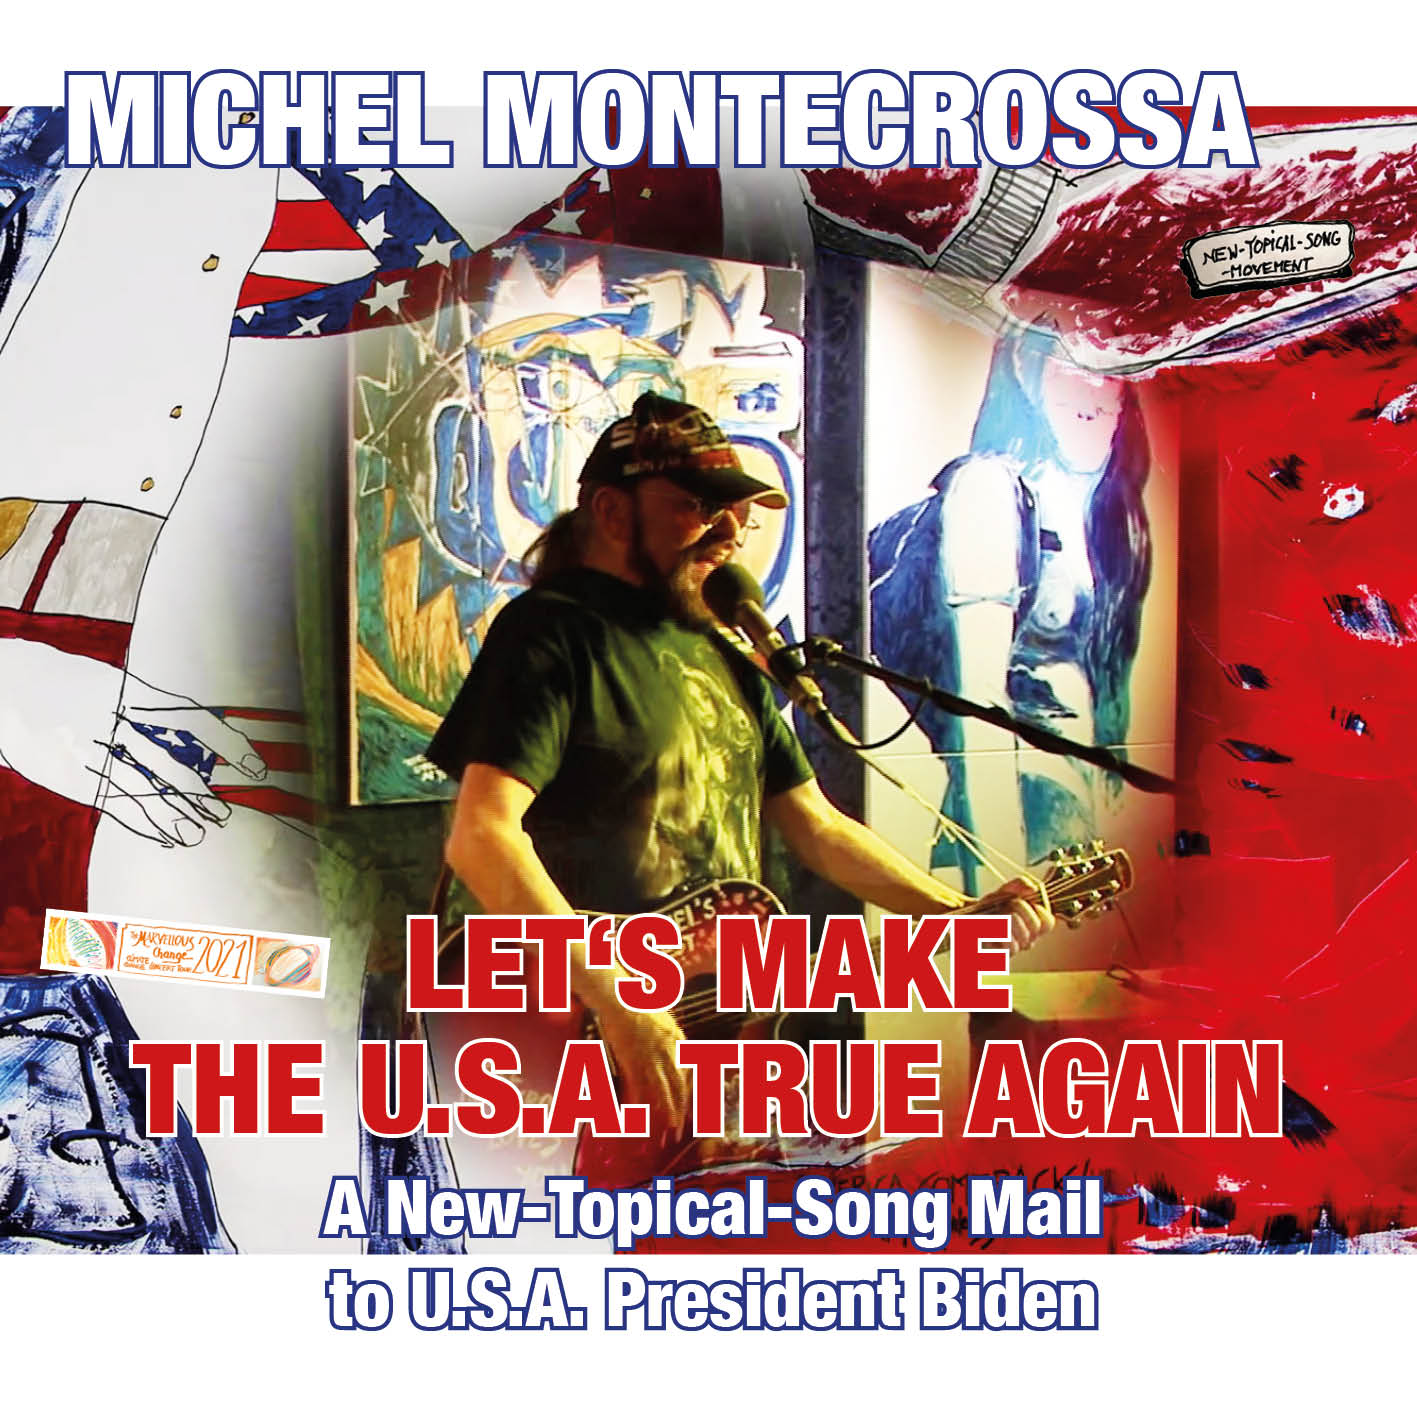 cd-cover-lets-make-the-usa-true-again